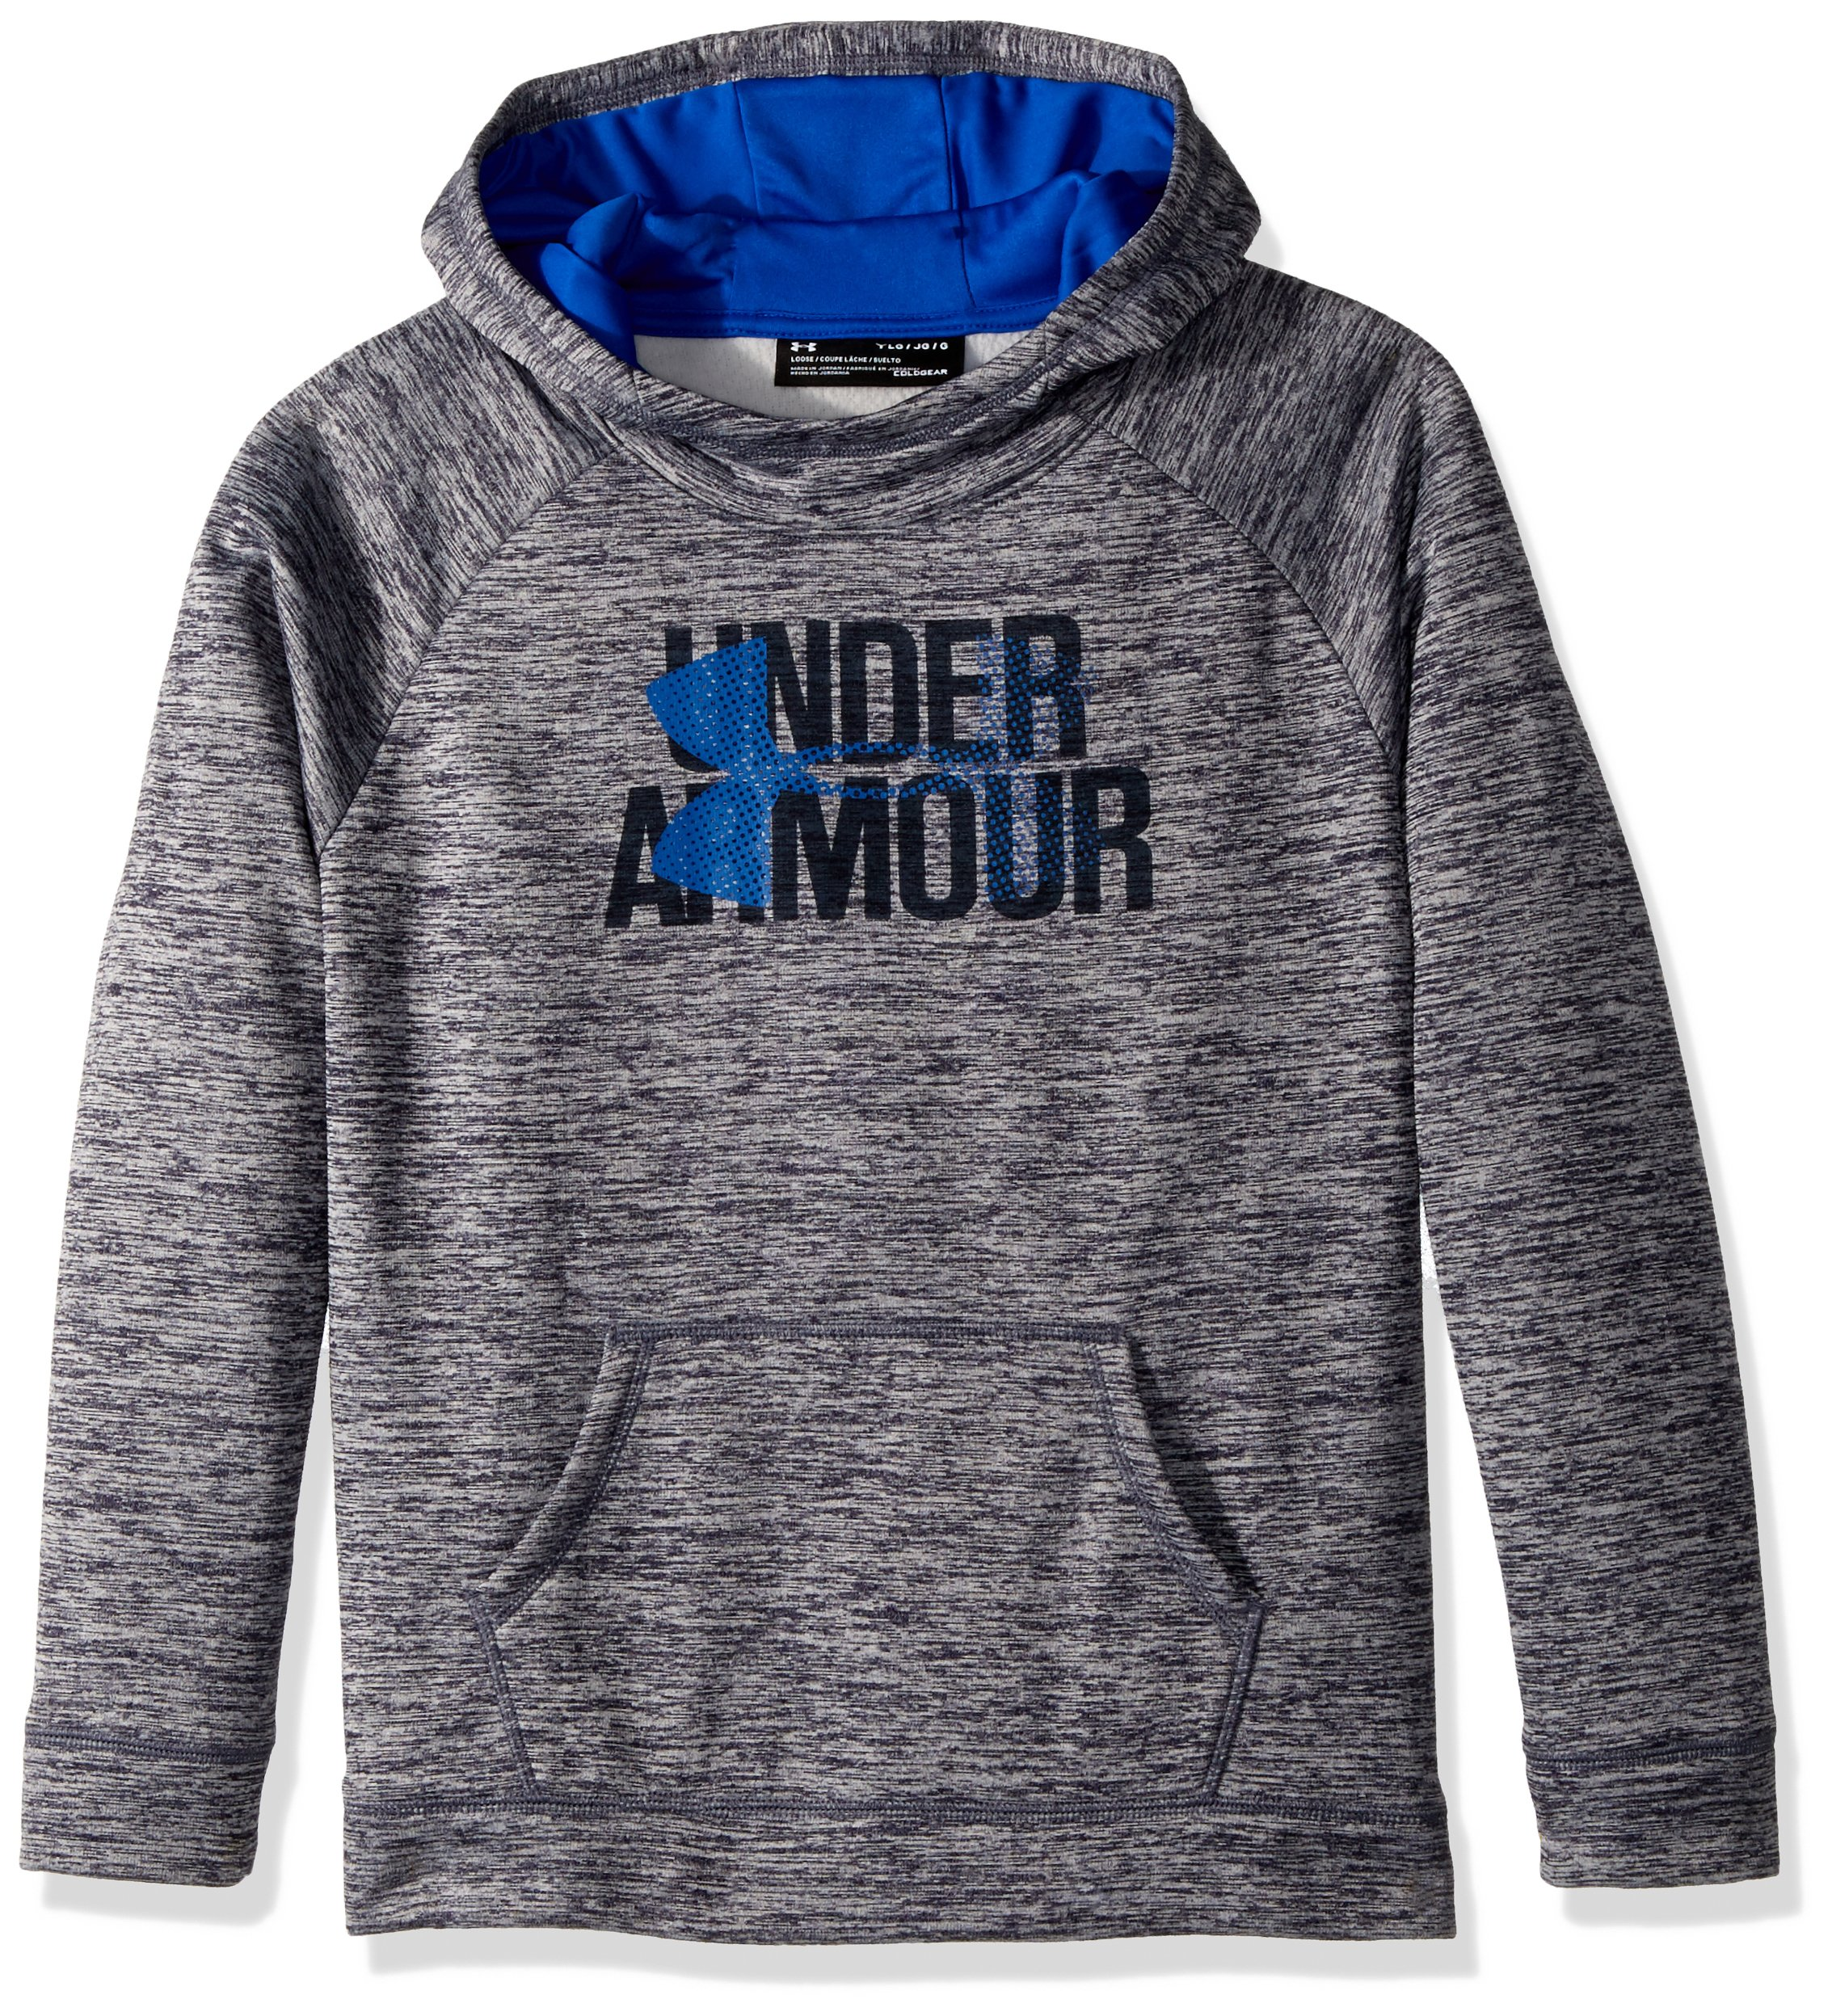 Under Armour Girls' Armour Fleece Big Logo Printed Hoodie, Midnight Navy (410)/Lapis Blue, Youth Small by Under Armour